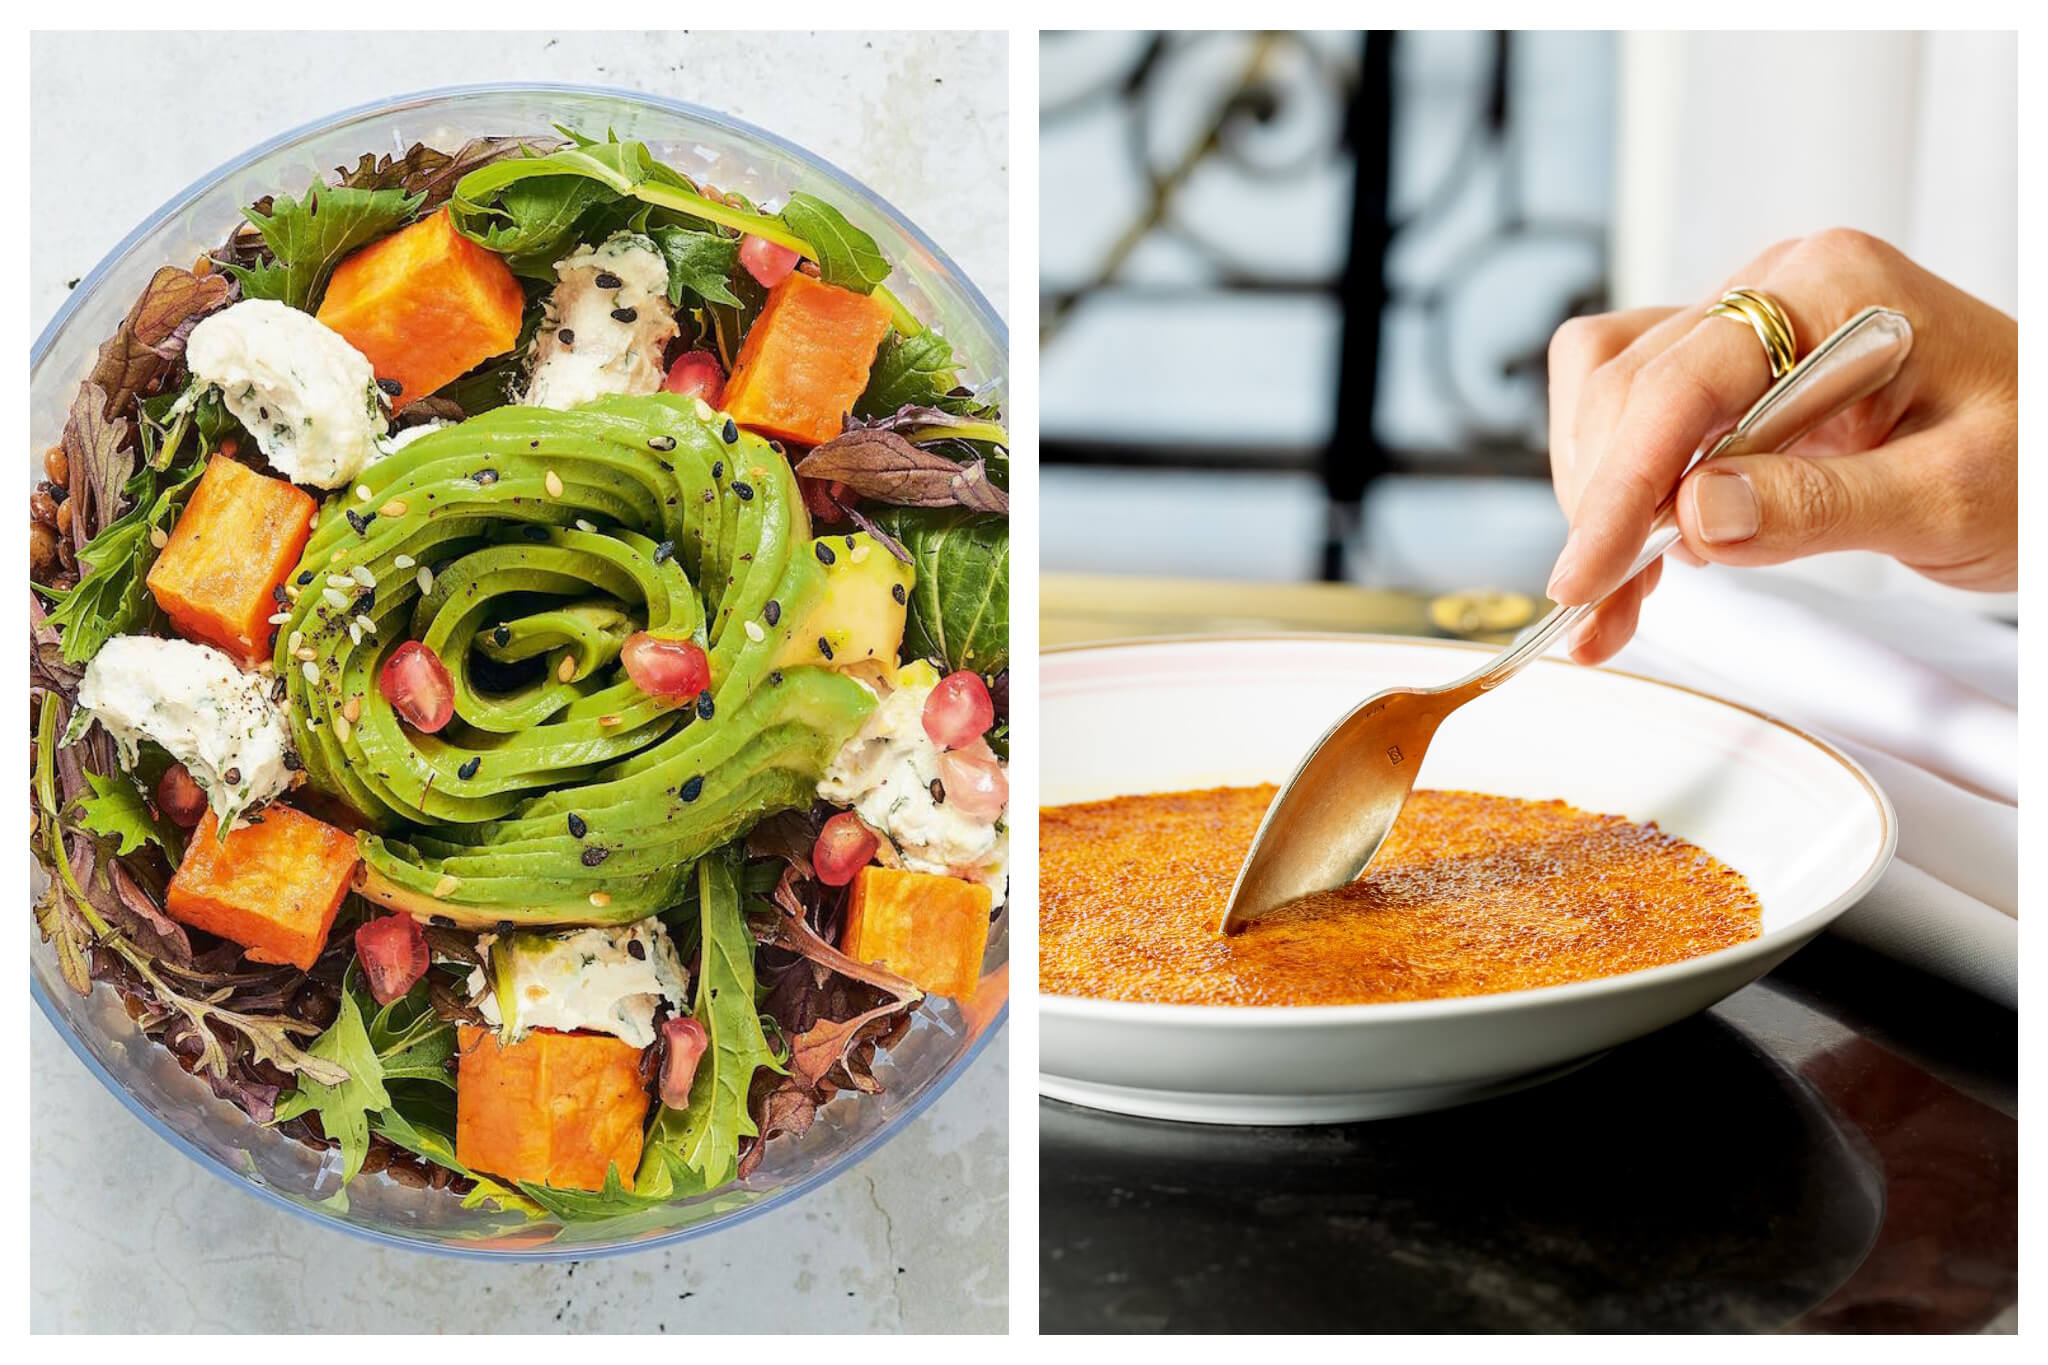 Left: A fresh, bright salad, filled with lettuce, sweet potato, avacado, cheese, walnuts, pomegranates and assorted other produce at Ladurée, Right: A person holds a large spoon and dips into the caramelized top of a crème brûlée at Ladurée.